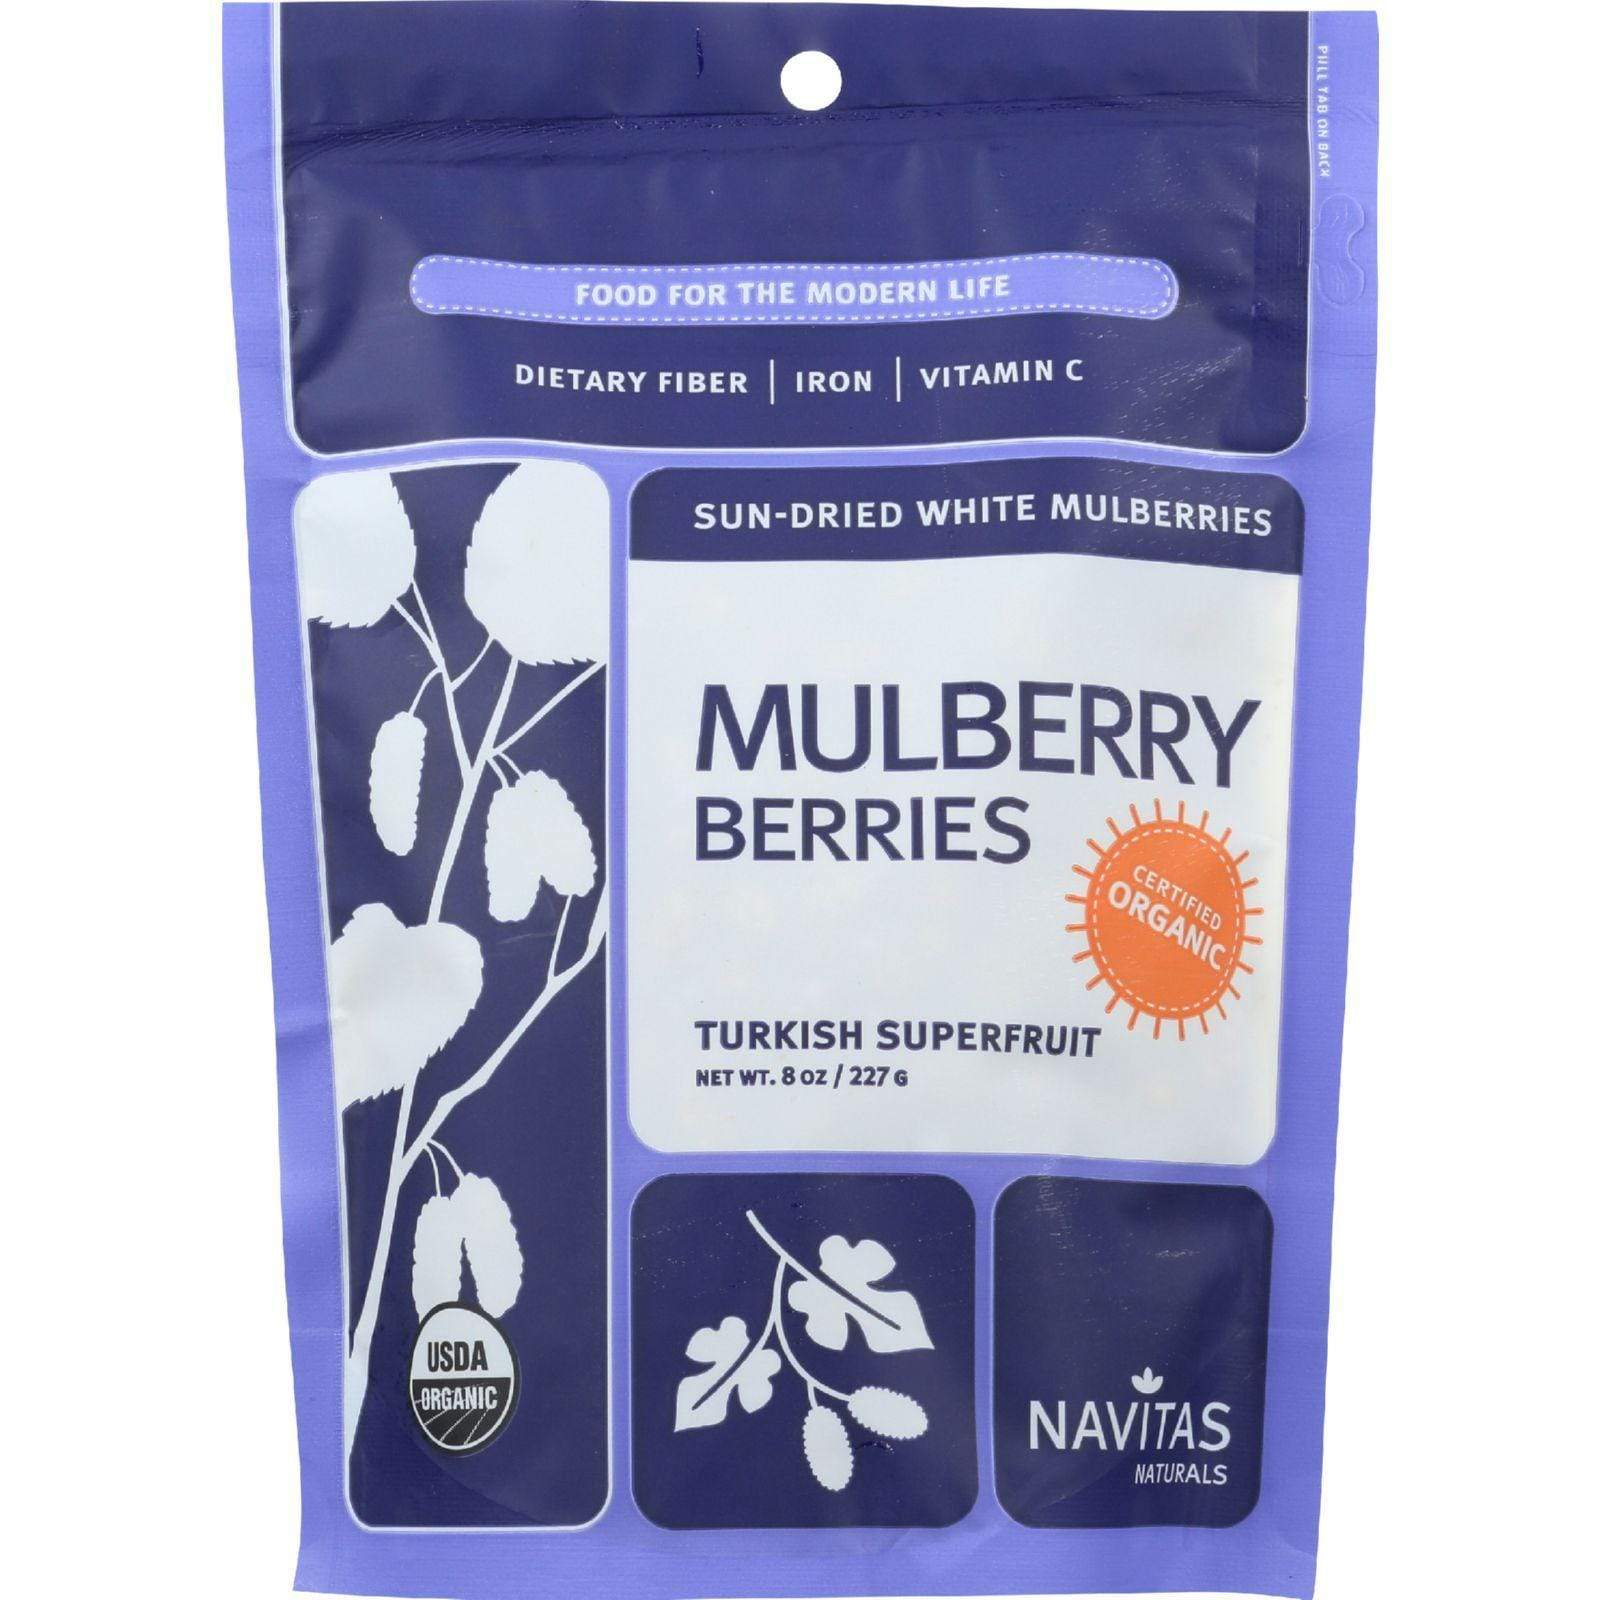 Navitas Naturals Energy Bars & Snacks Navitas Naturals Mulberry Berries - Organic - Sun-dried - 8 Oz - Case Of 12